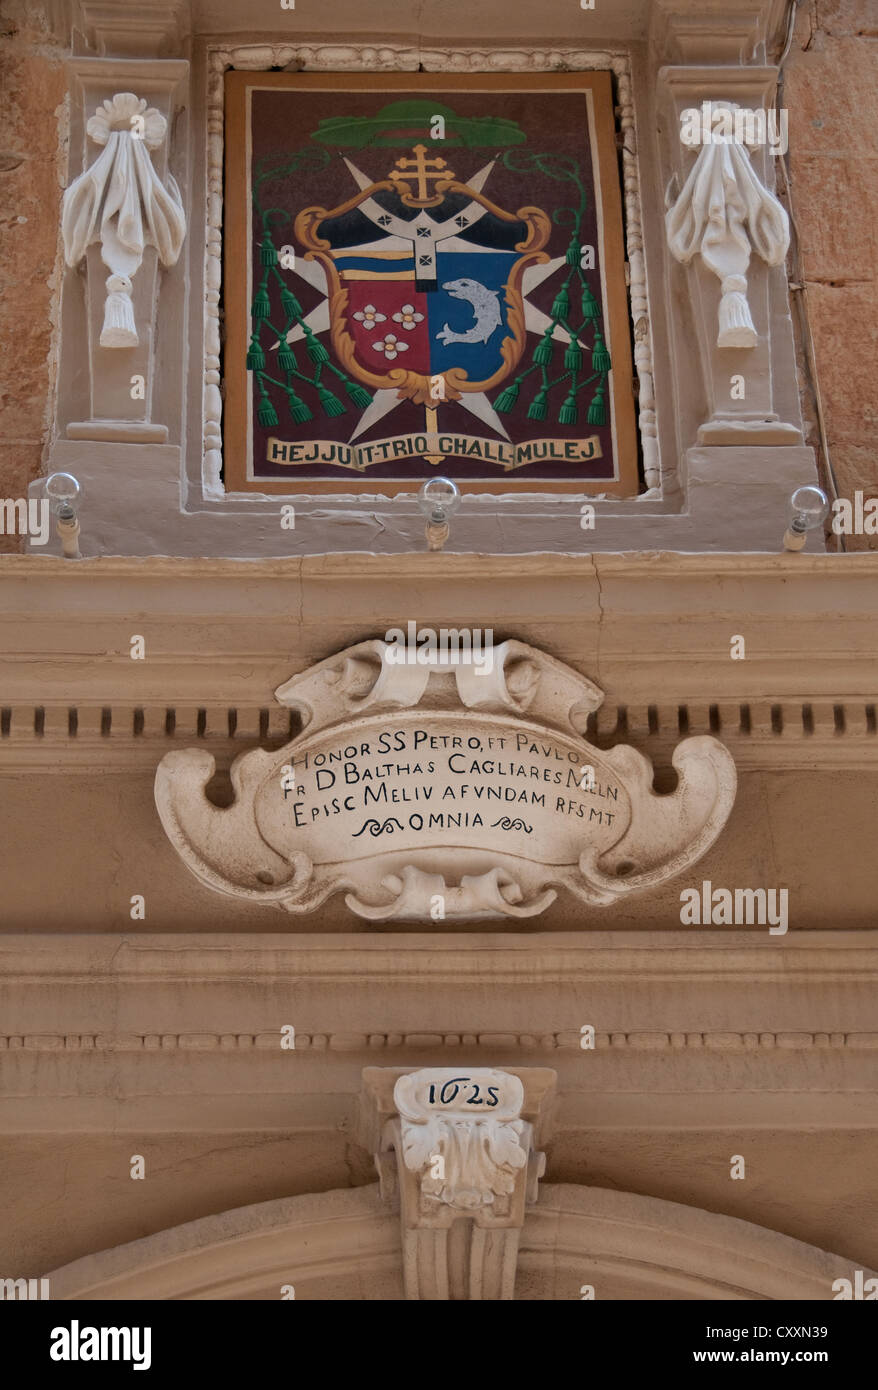 Detail from the doorway of the Archbishop's Palace, Mdina, Malta - Stock Image